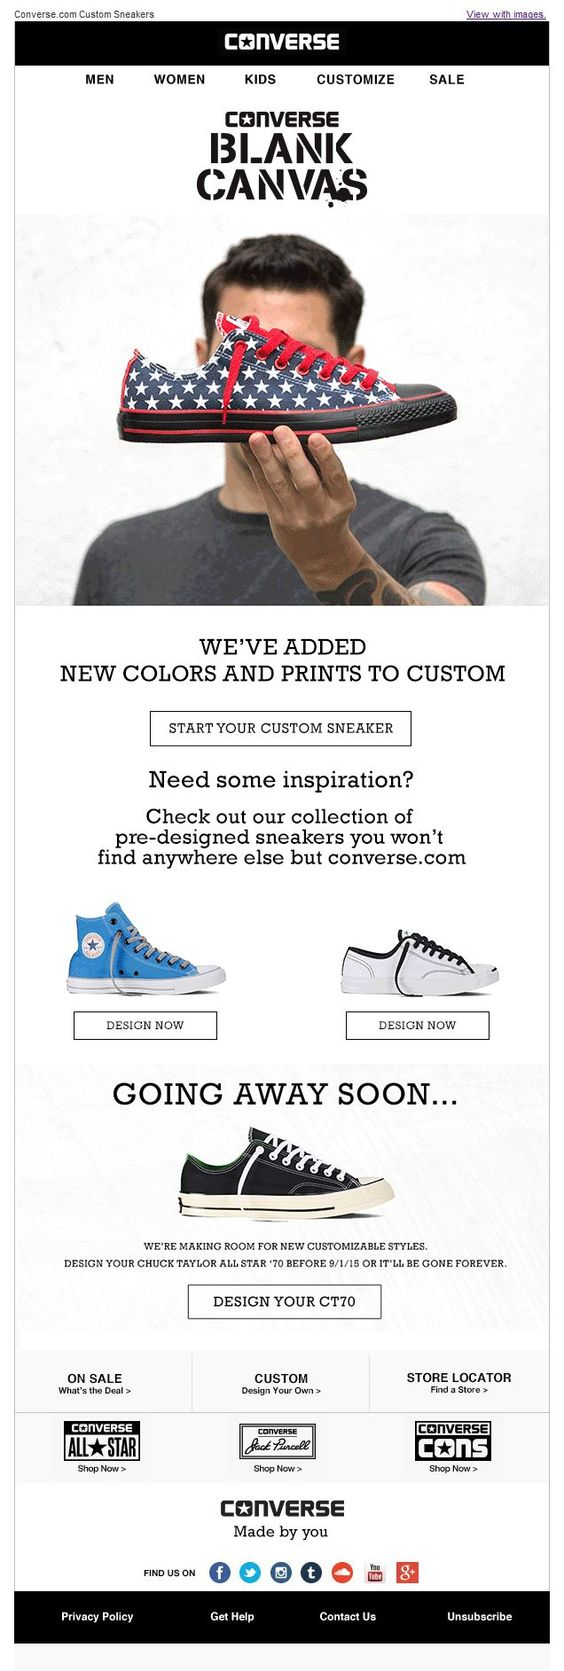 converse product emails